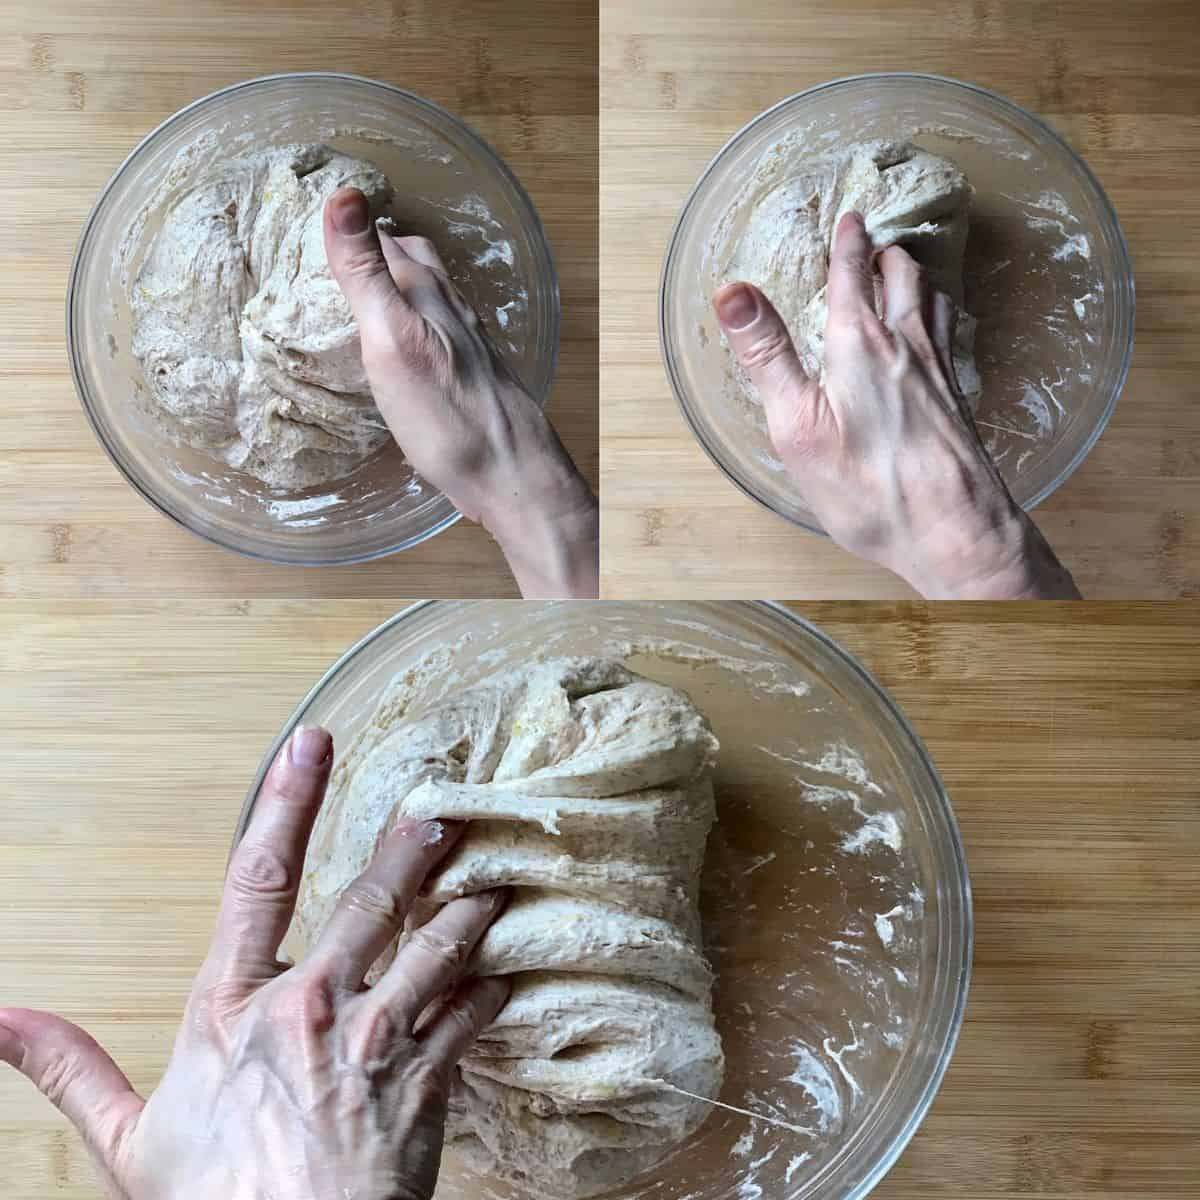 A photo collage of wholewheat pizza dough being folded in a bowl.